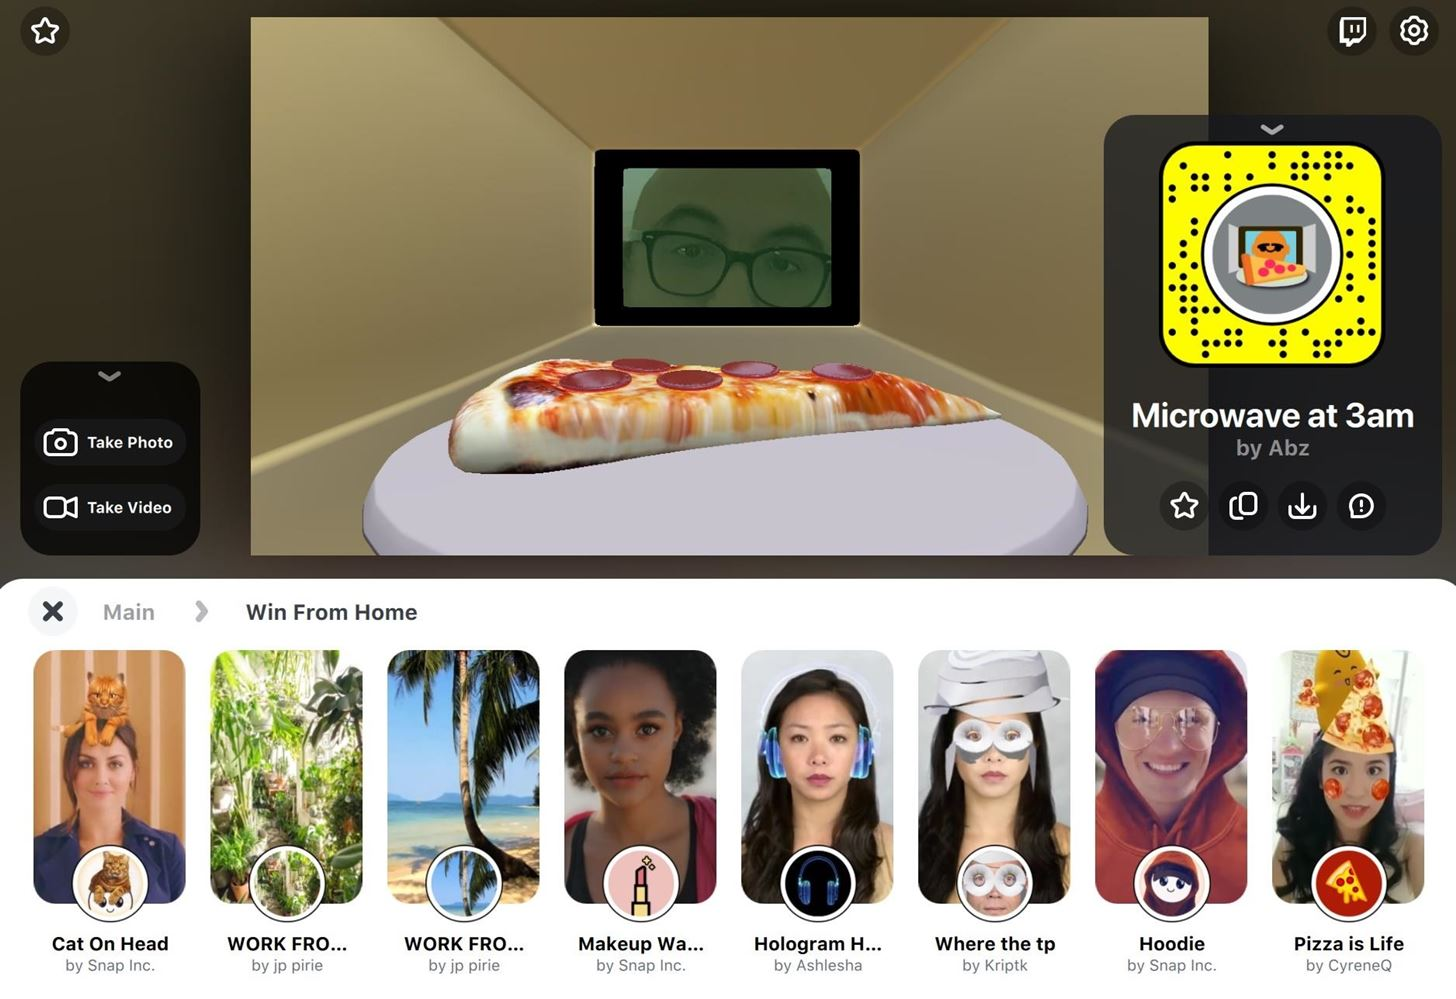 How to Use Your Favorite Snapchat AR Lenses on Zoom, Skype, Meet & Other Video Conferencing Apps